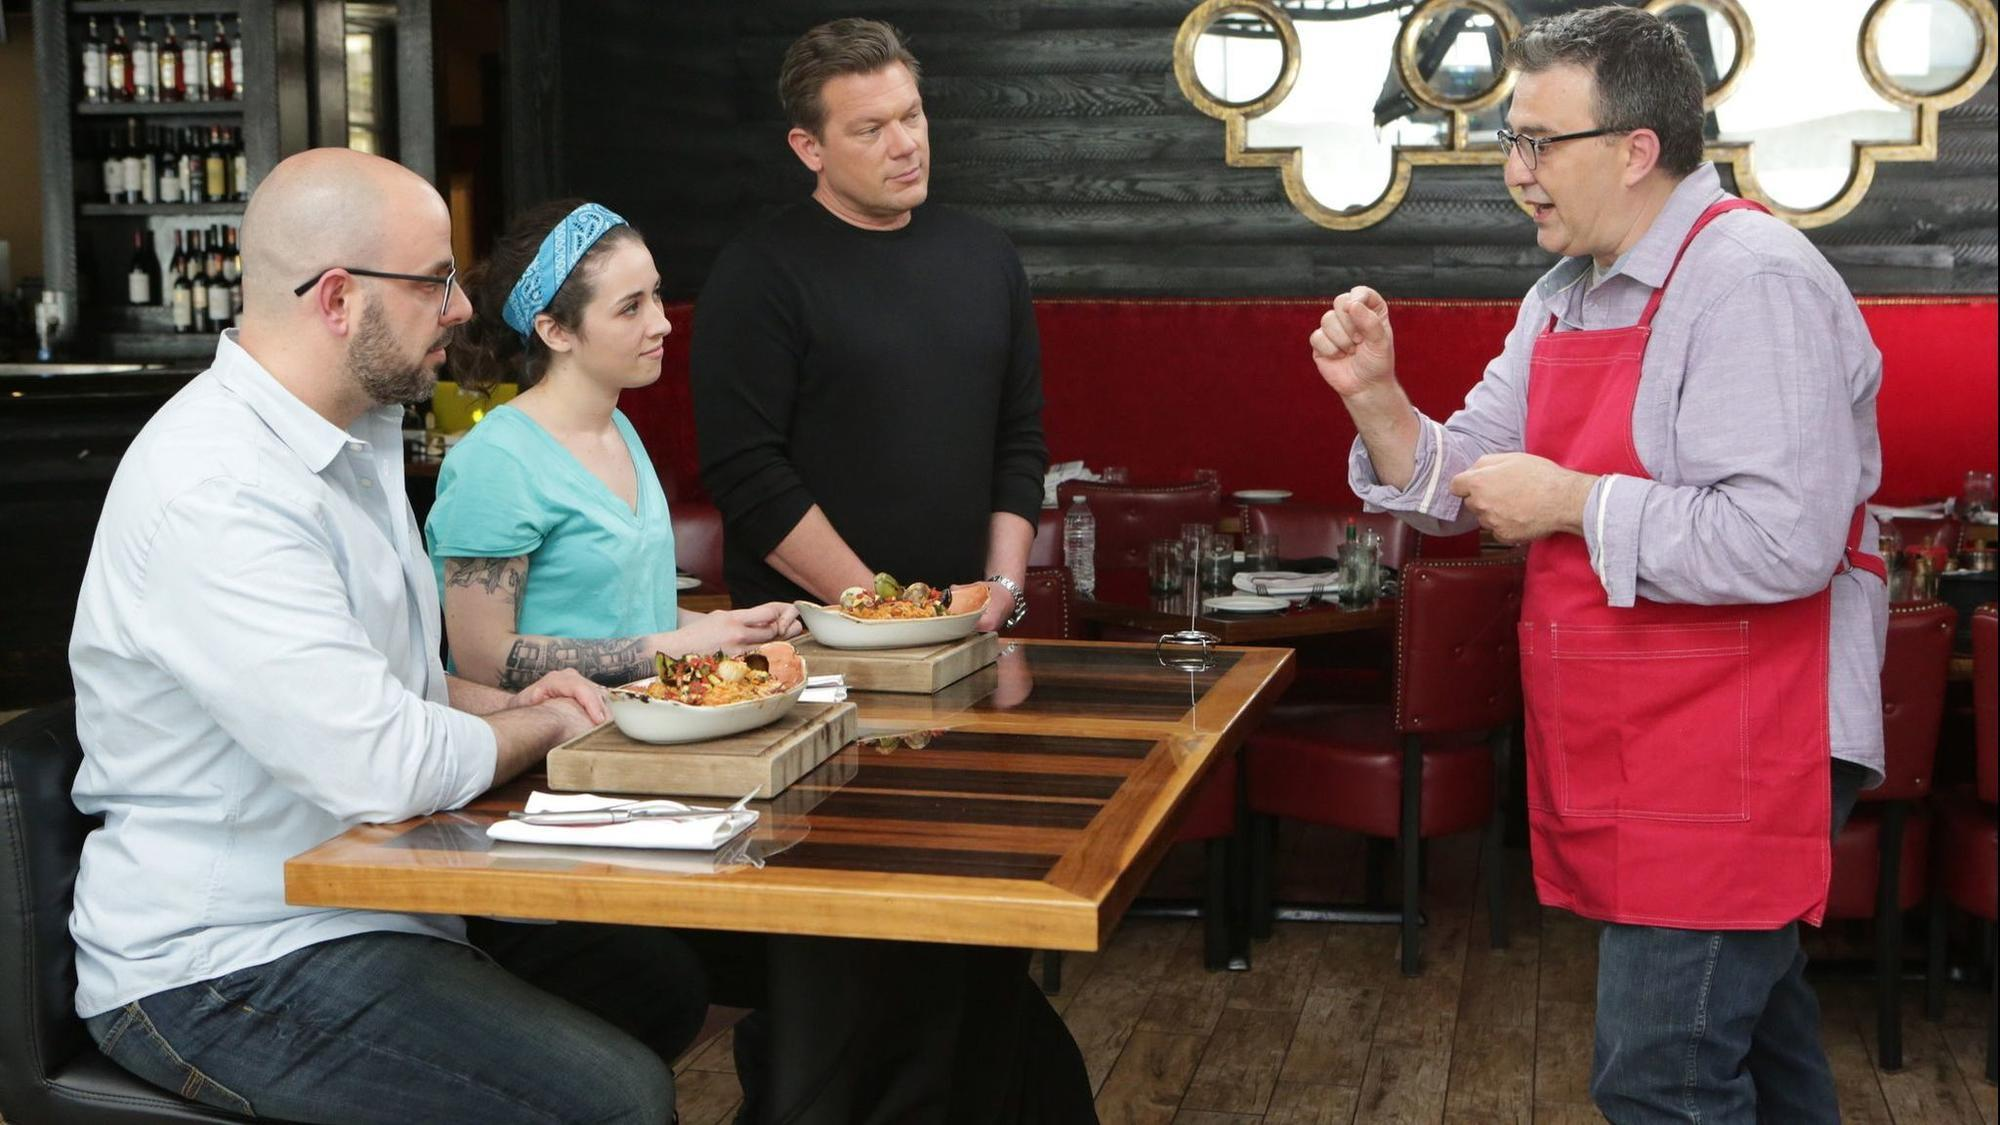 Chicago chefs compete at River North restaurant on new Food Network series